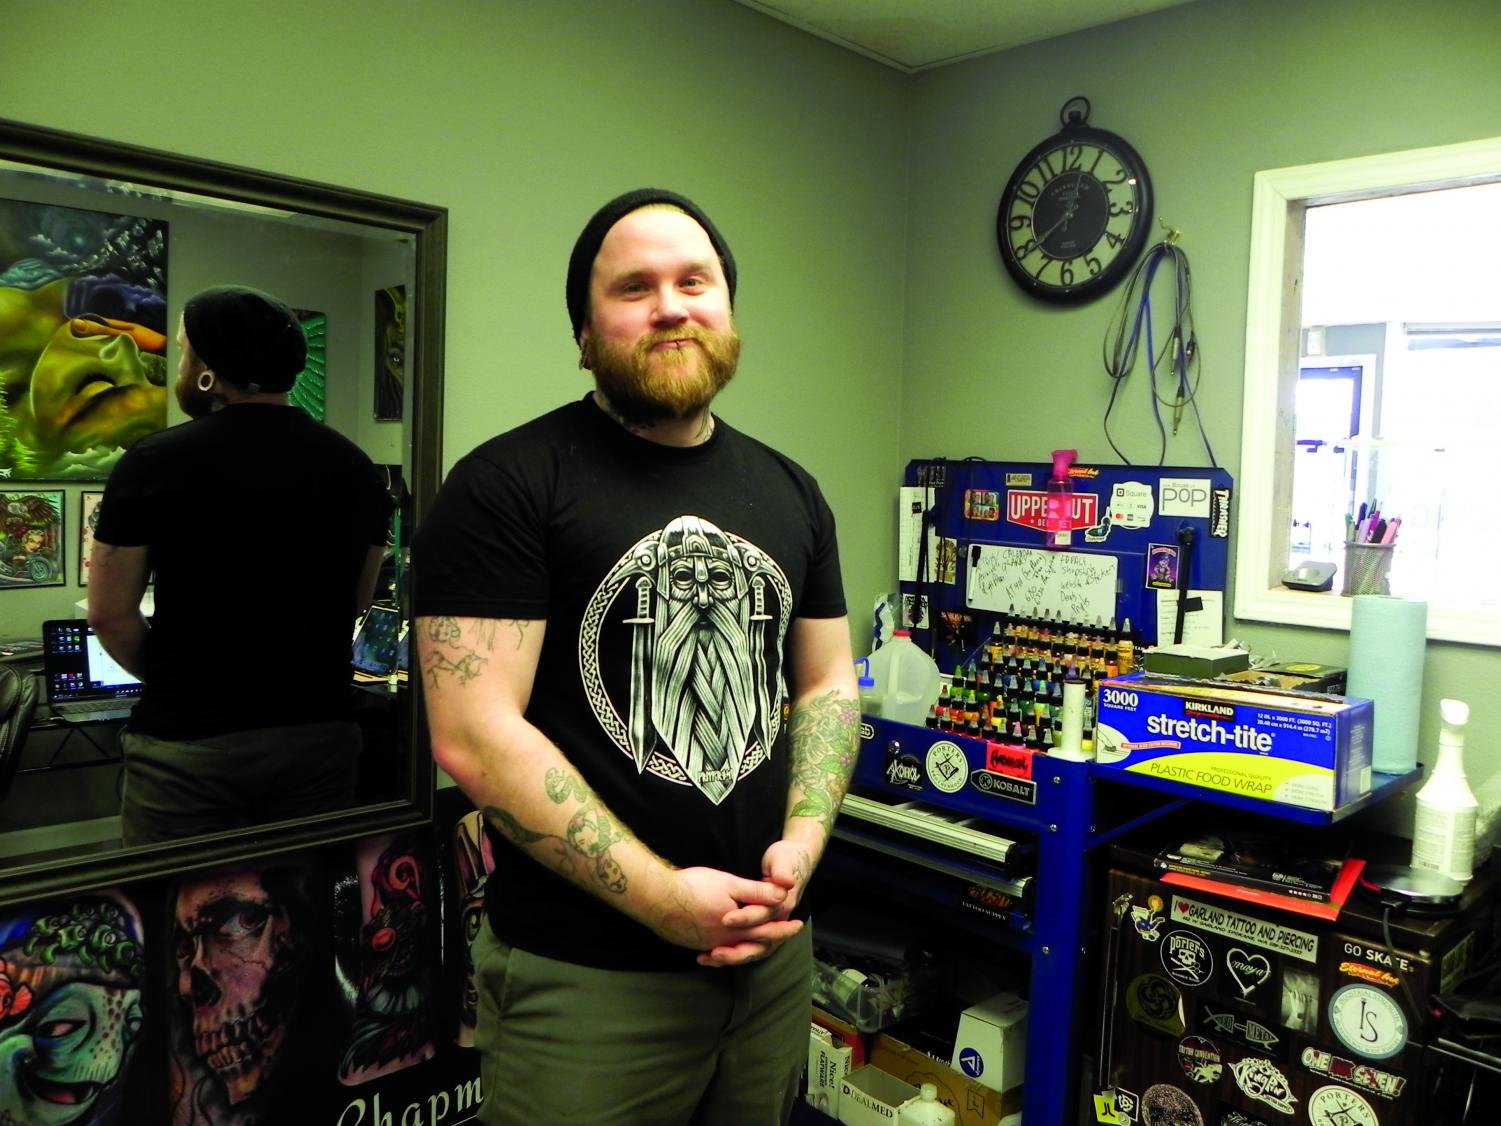 Owner Lazer Larry is originally from Los Angeles, California. Larry has been piercing for over 22 years and branding for the past 11 years. The shop opened six years ago | Sam Jackson for The Easterner